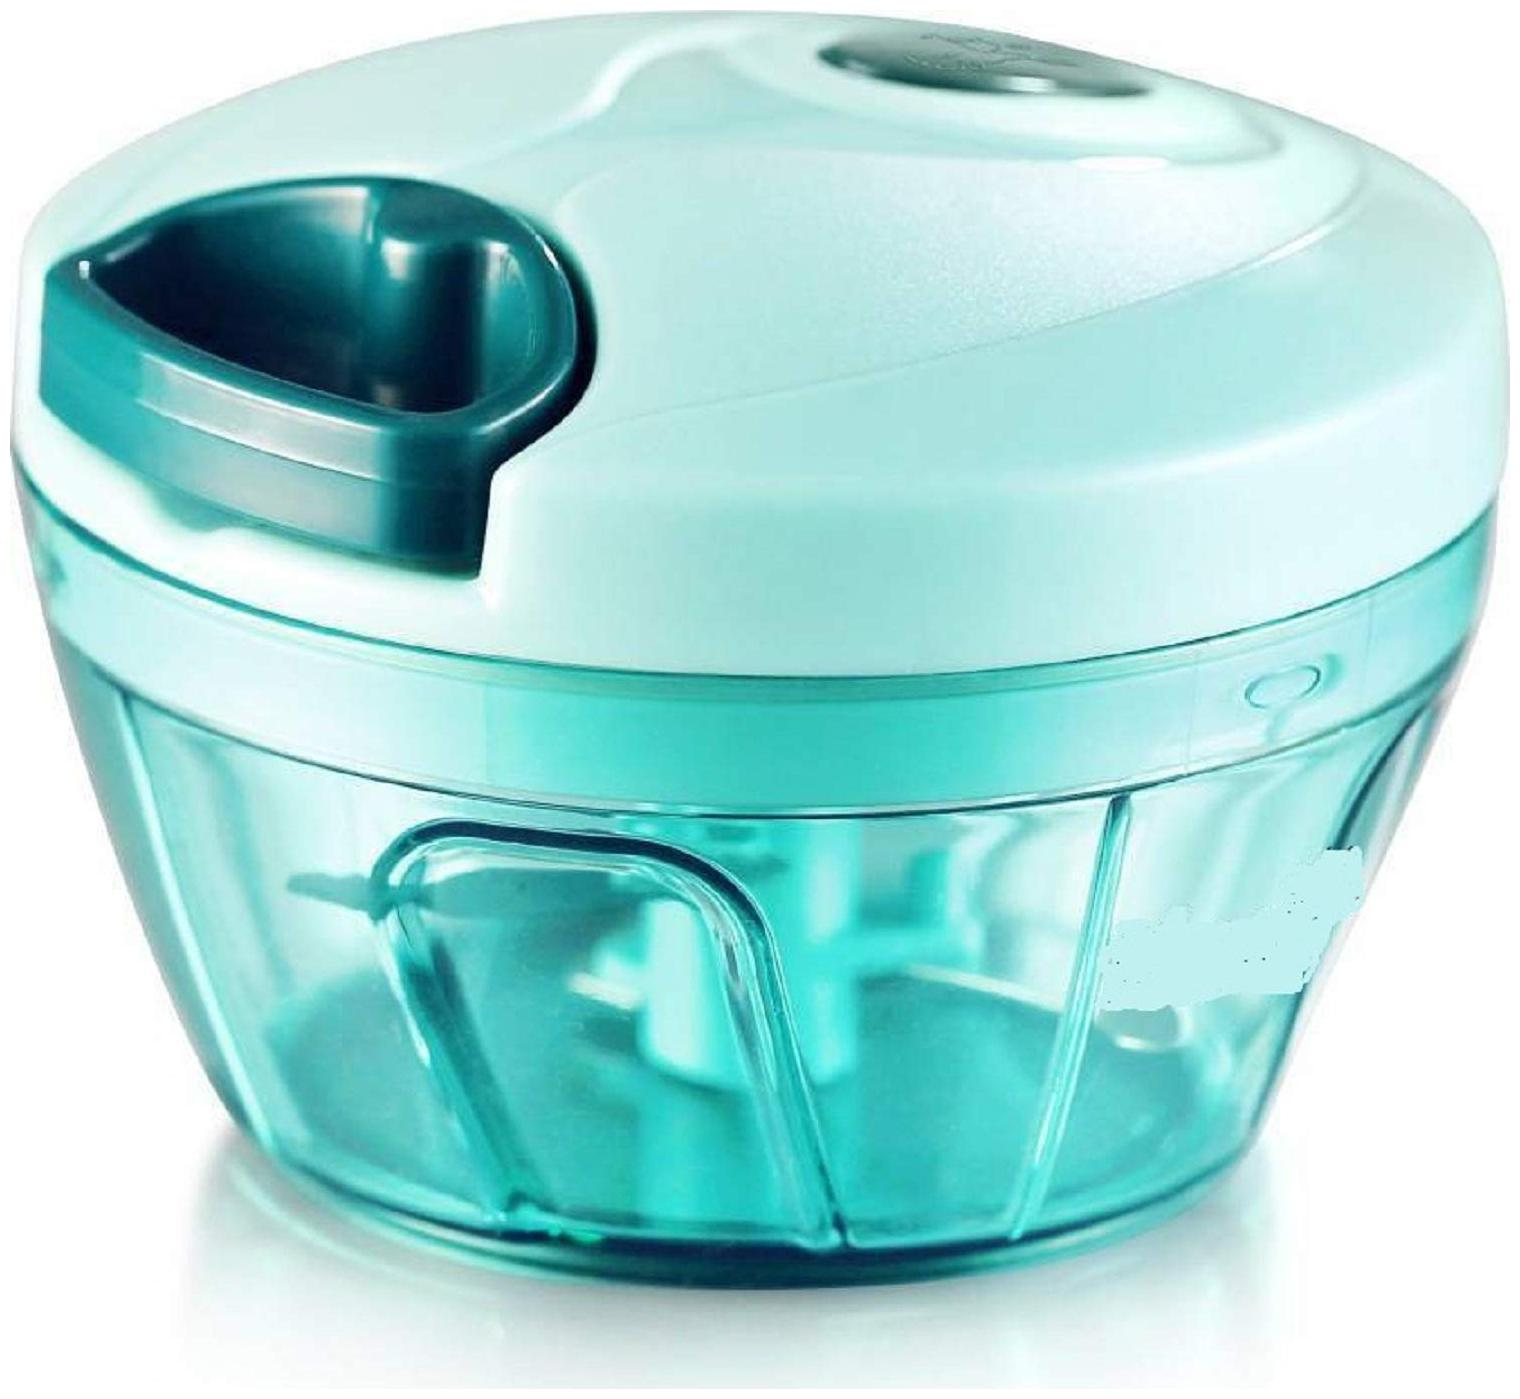 Respo Vegetable Cutter chopper and Food Processor